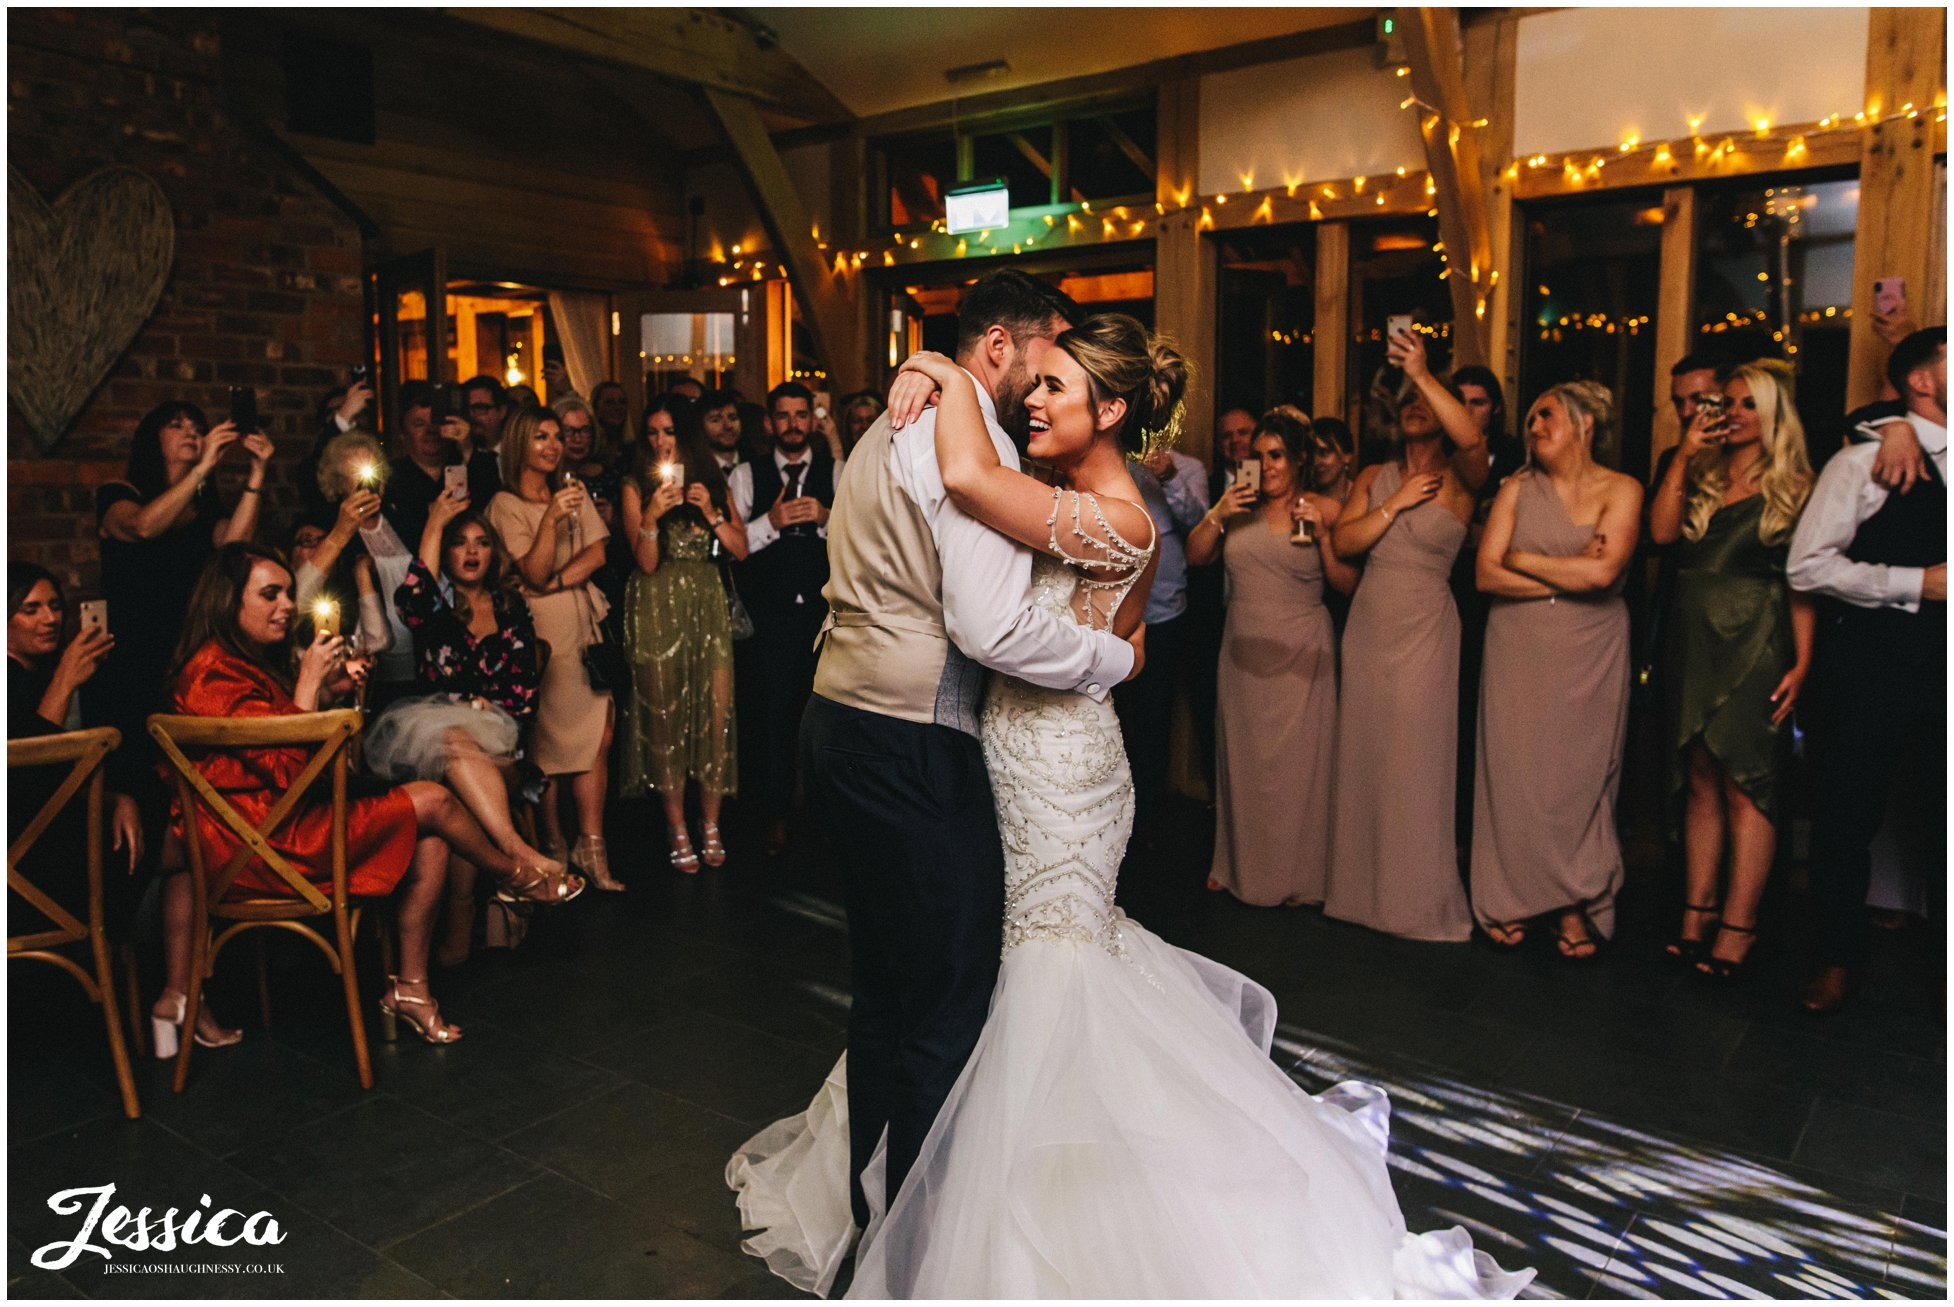 the couple share their first dance together